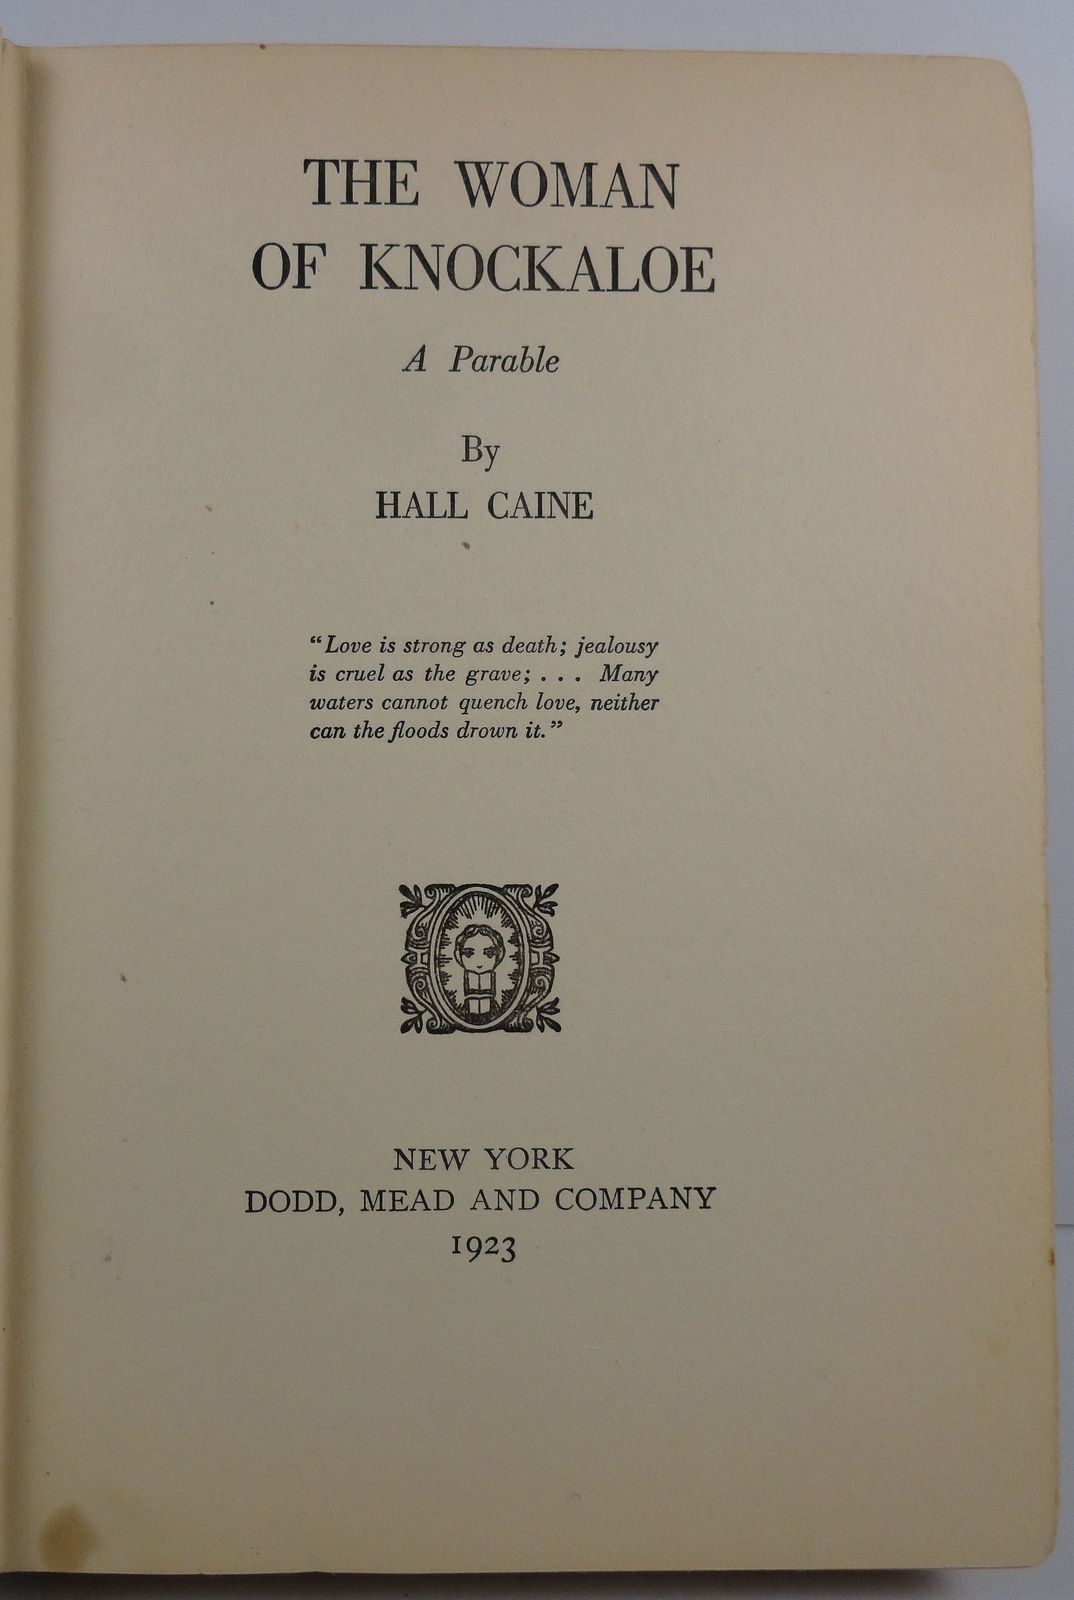 The Woman of Knockaloe, A Parable by Hall Caine 1923